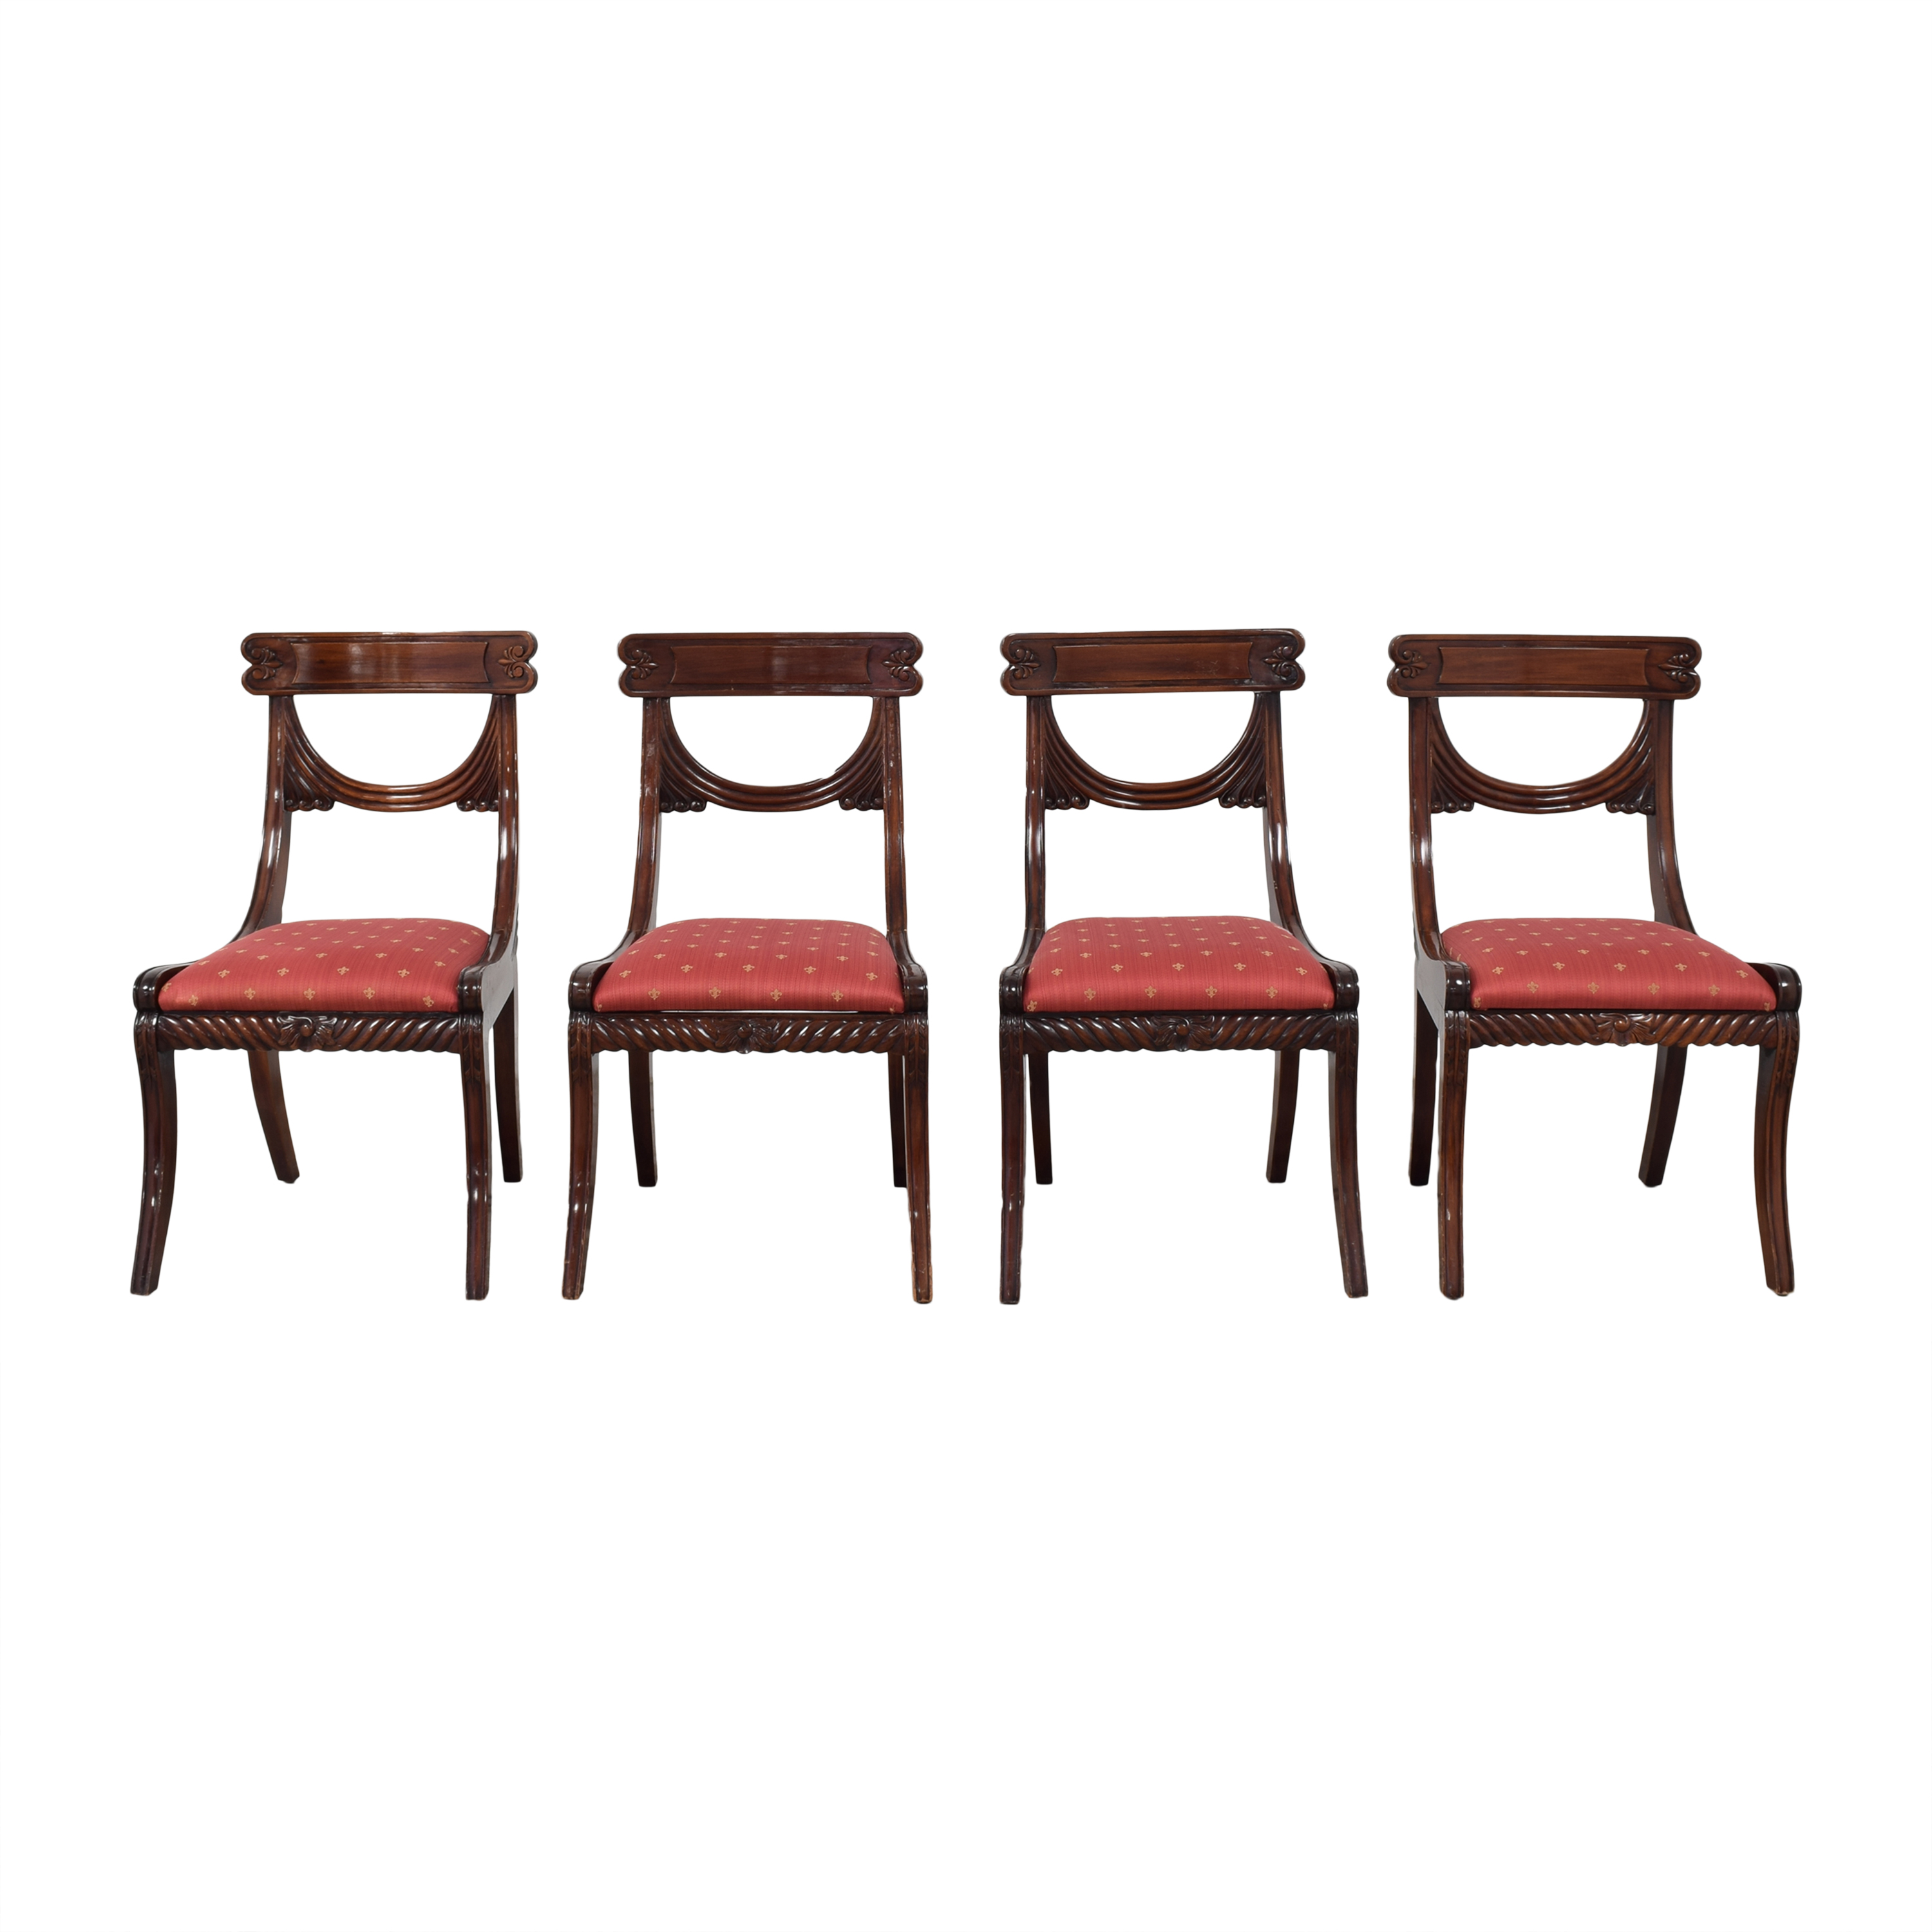 Rose Tarlow Rose Tarlow Upholstered Dining Chairs Dining Chairs